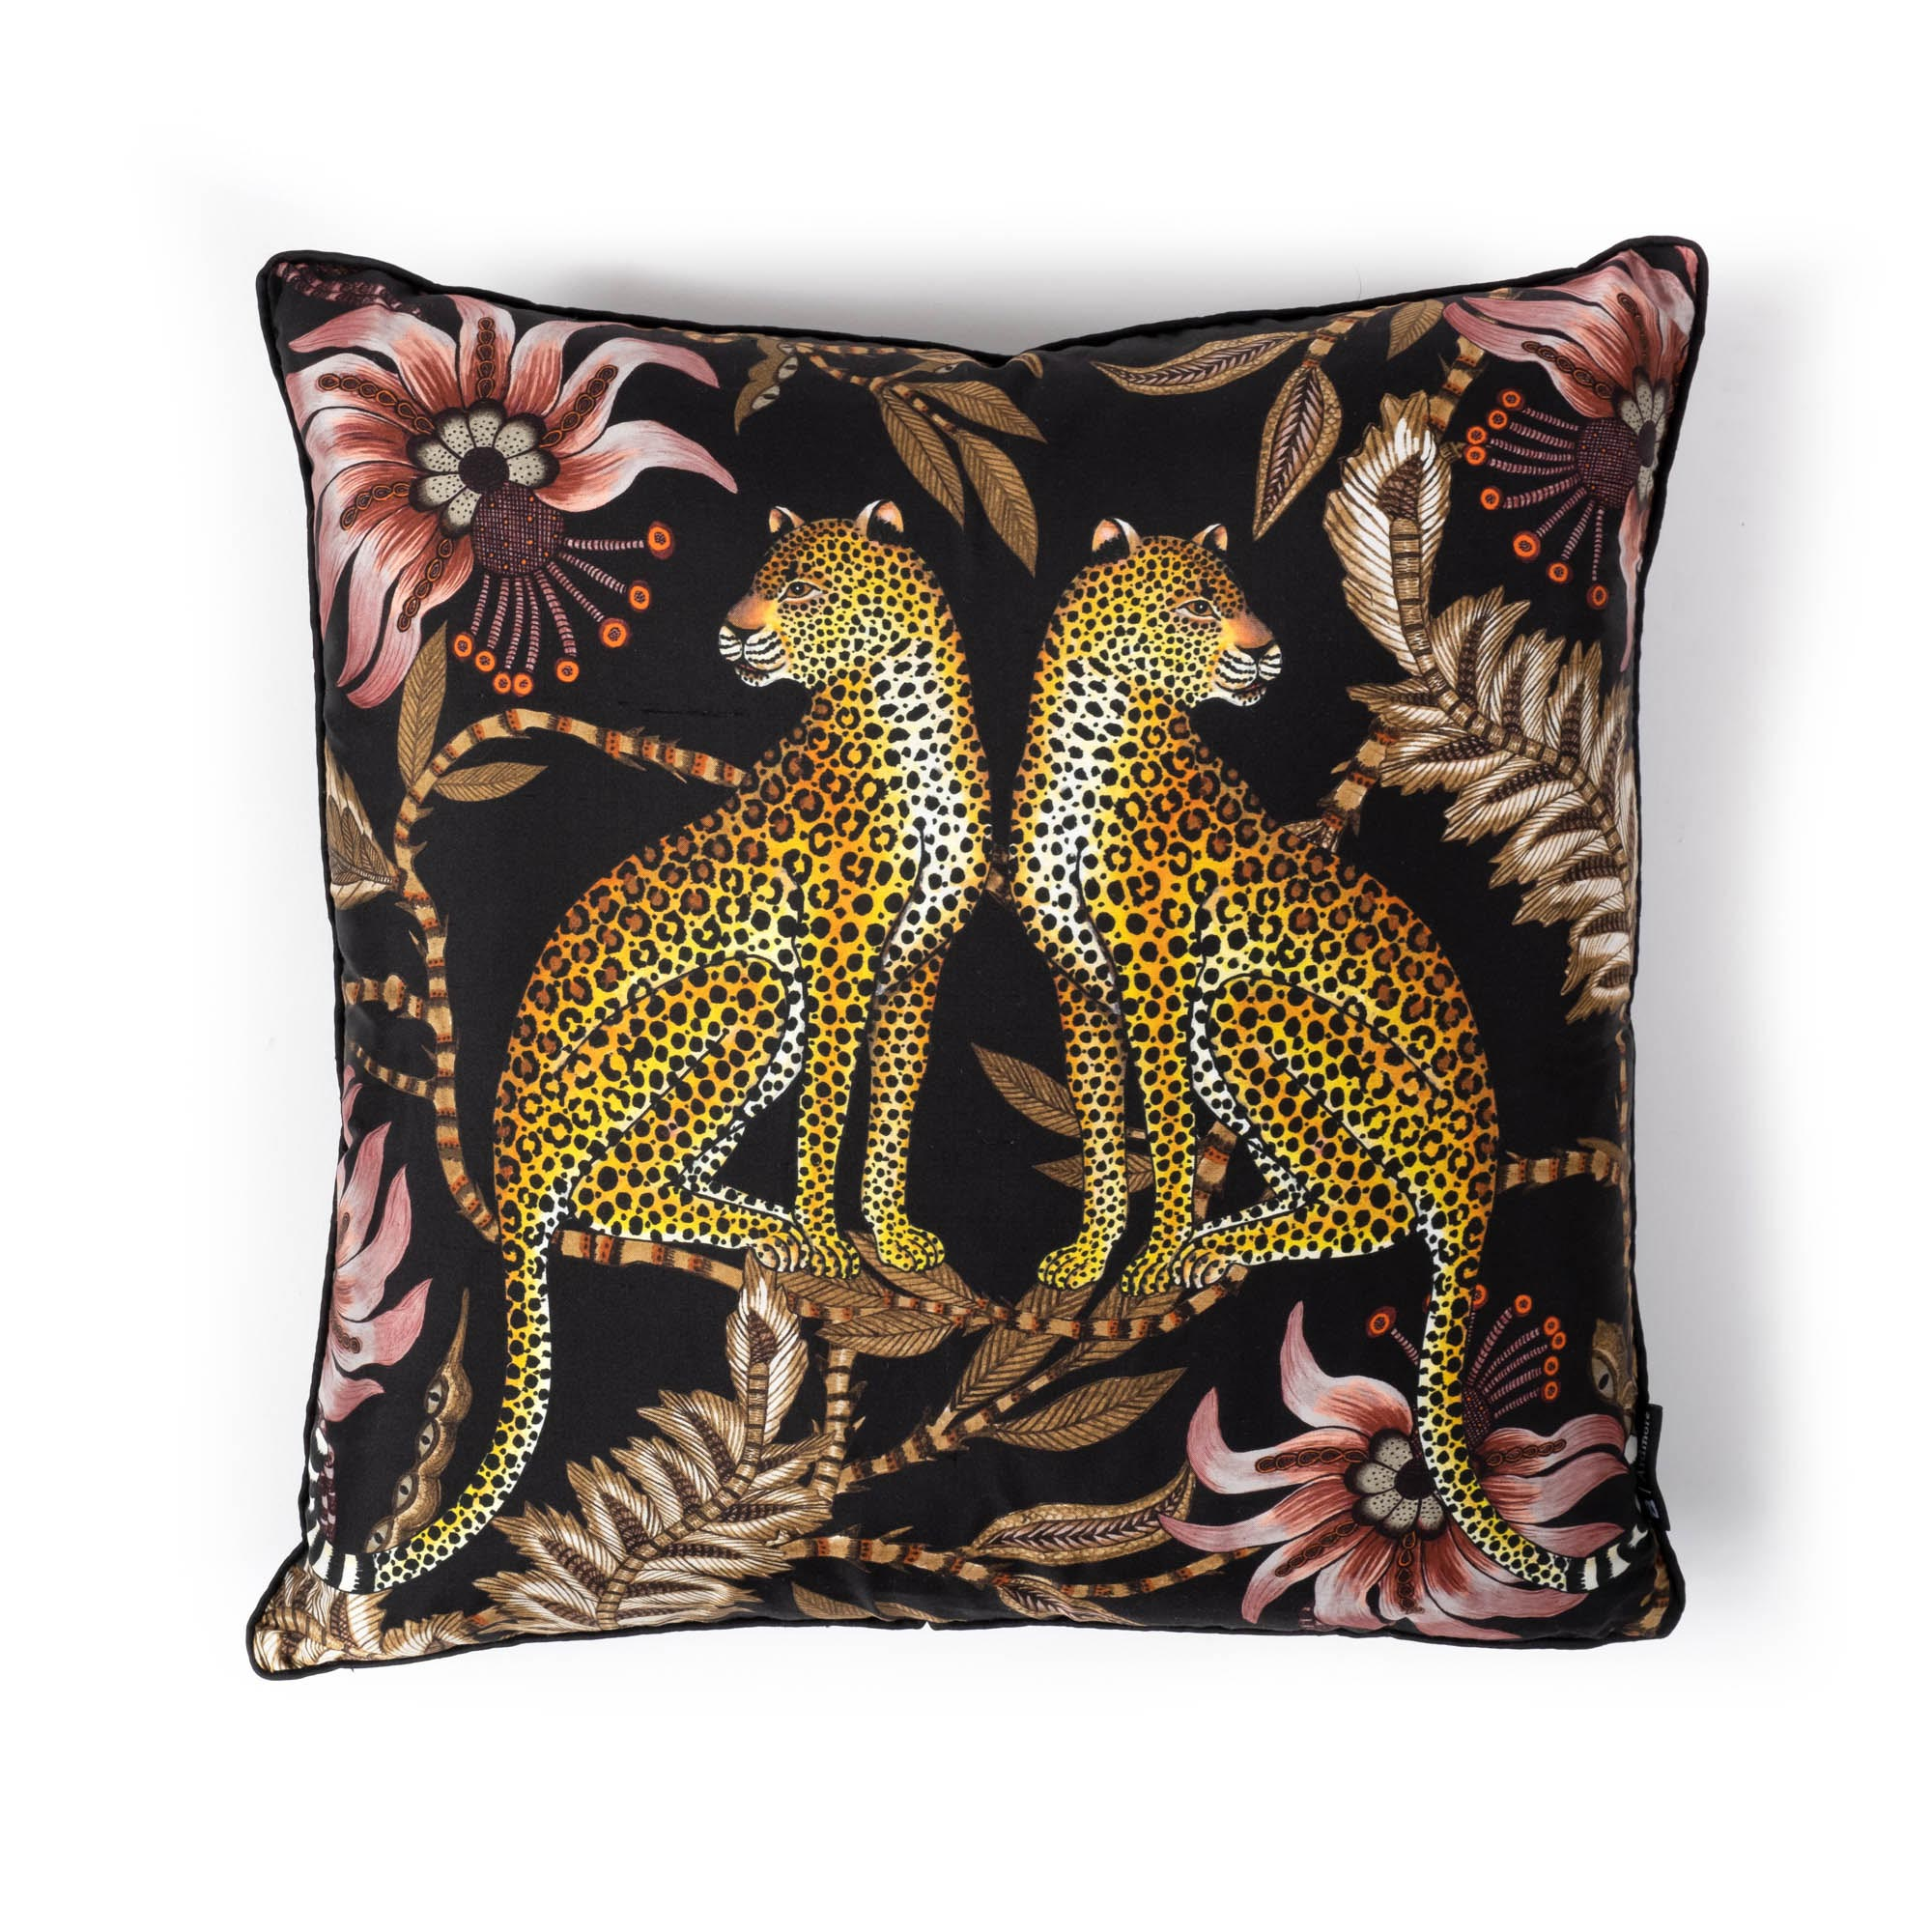 Lovebird Leopards Pillow - Silk - Night